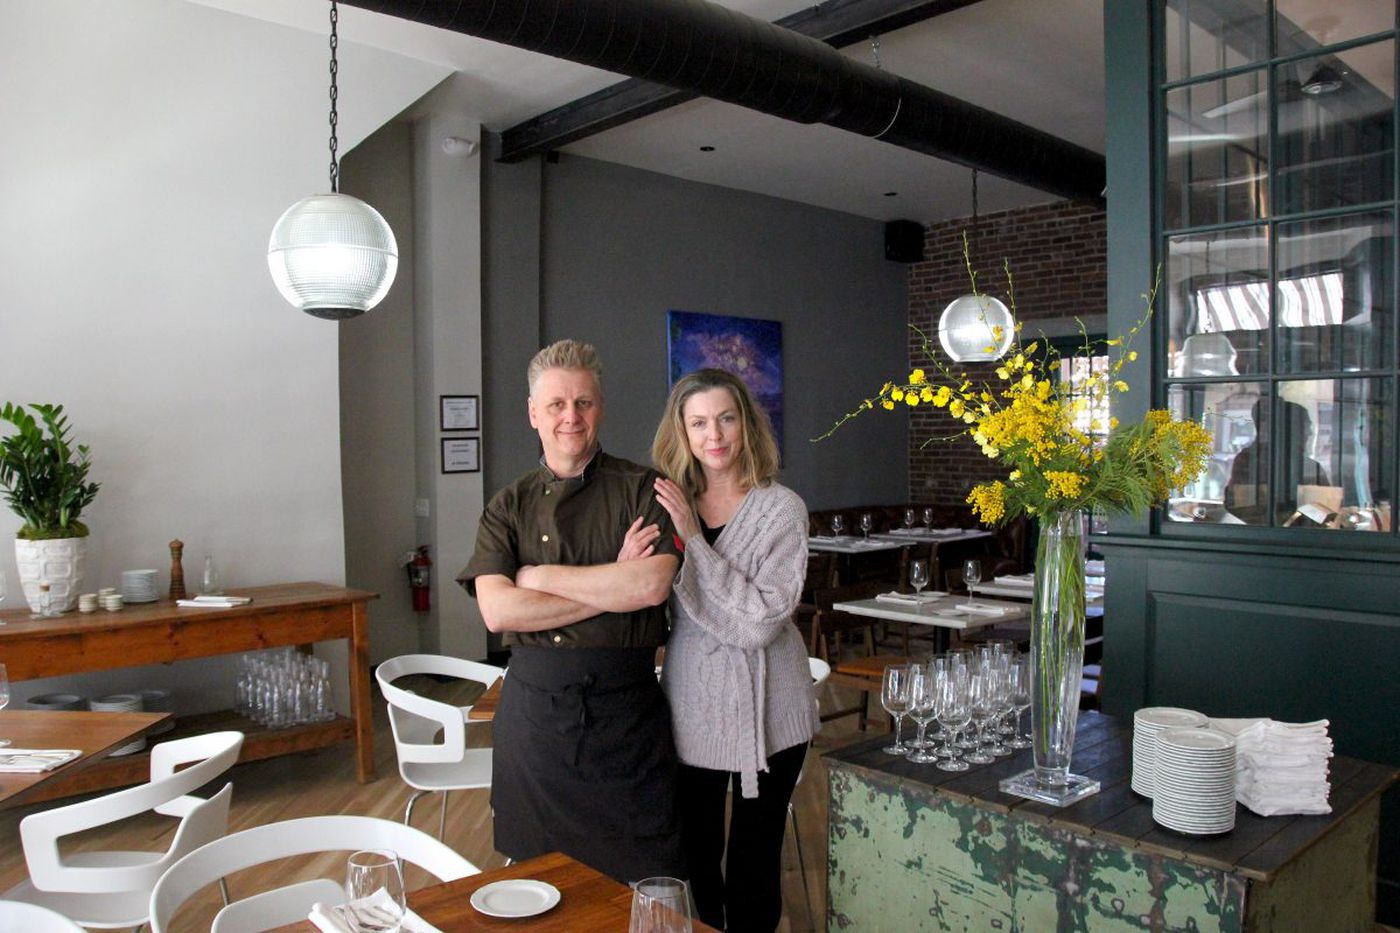 Seasoned chef Alex Cormier back at the stove for more